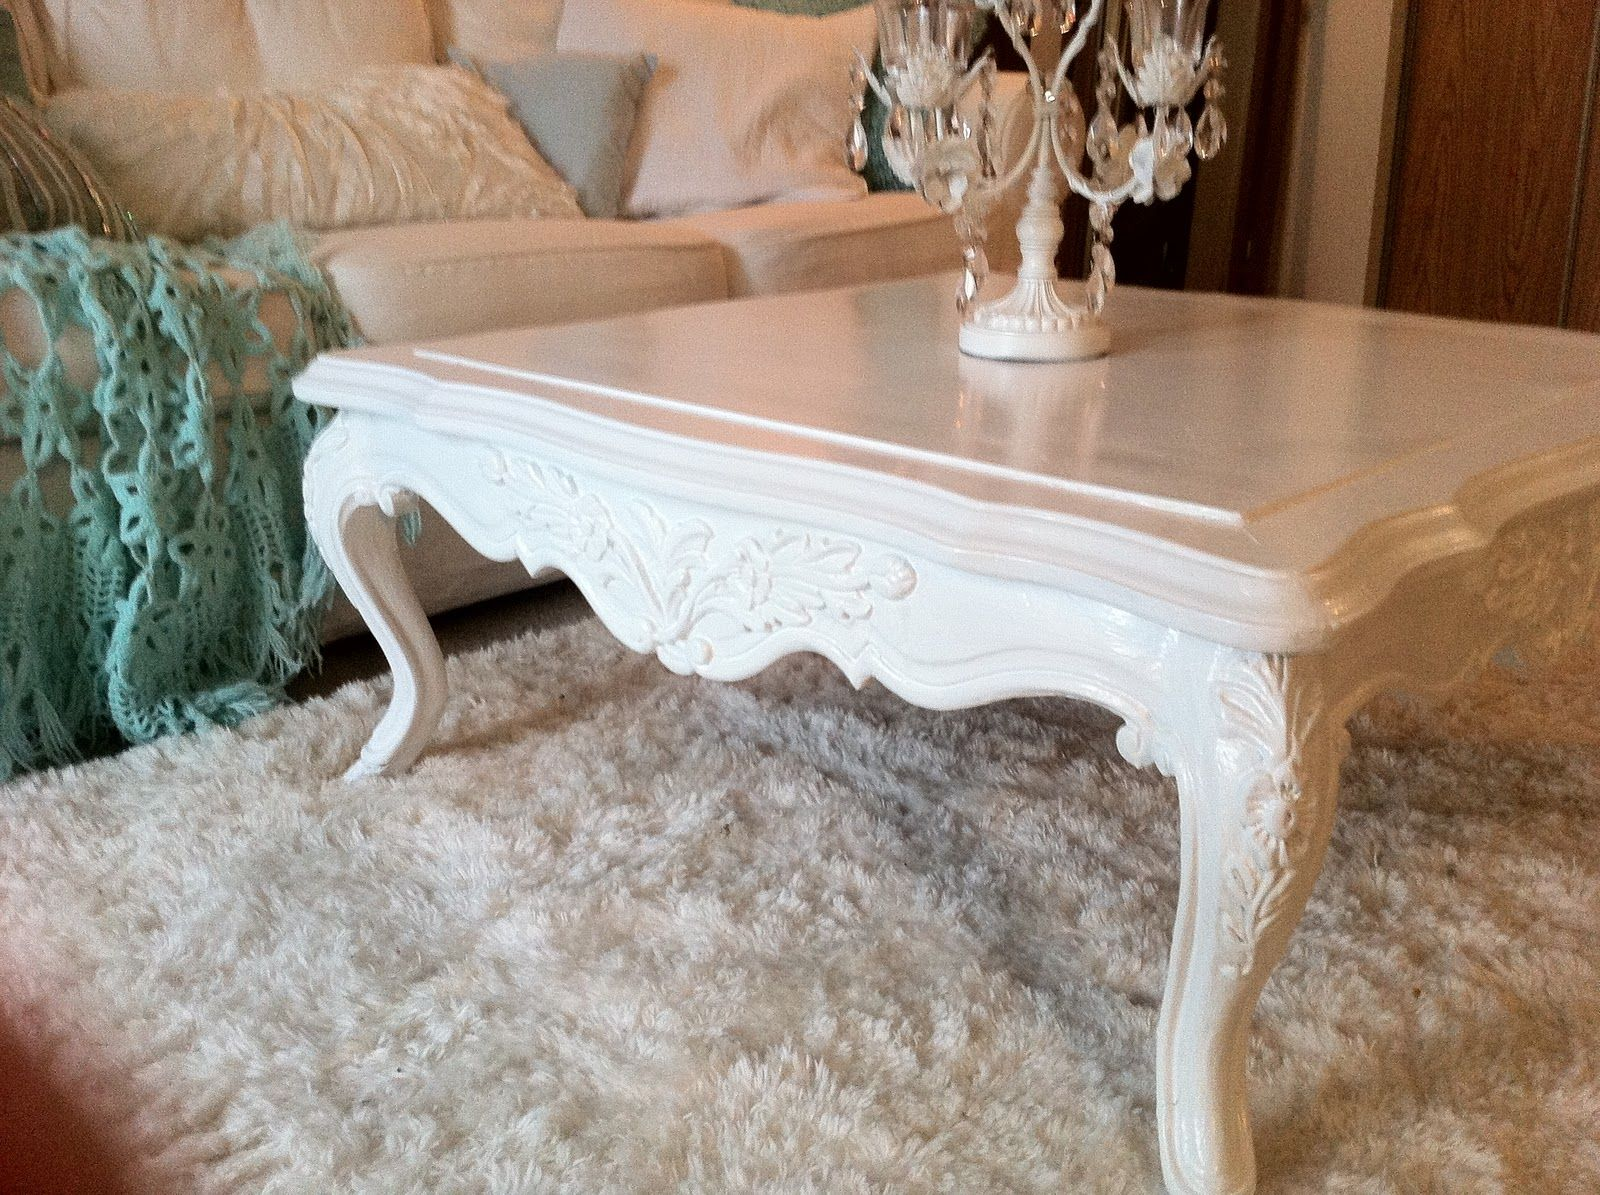 Shabby Chic Coffee Table This One Is Better Wooden Top Instead Of Glass Shabby Chic Decor Diy Shabby Chic Sofa Shabby Chic Coffee Table [ 1195 x 1600 Pixel ]